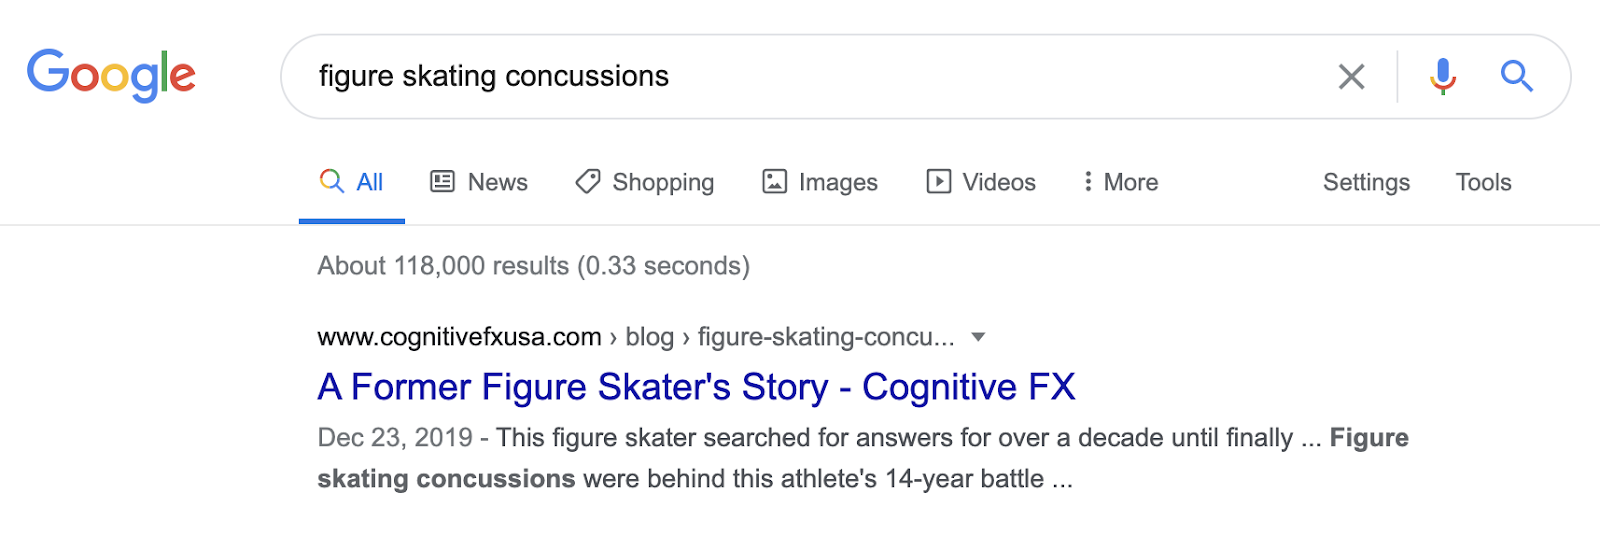 figure skating concussions